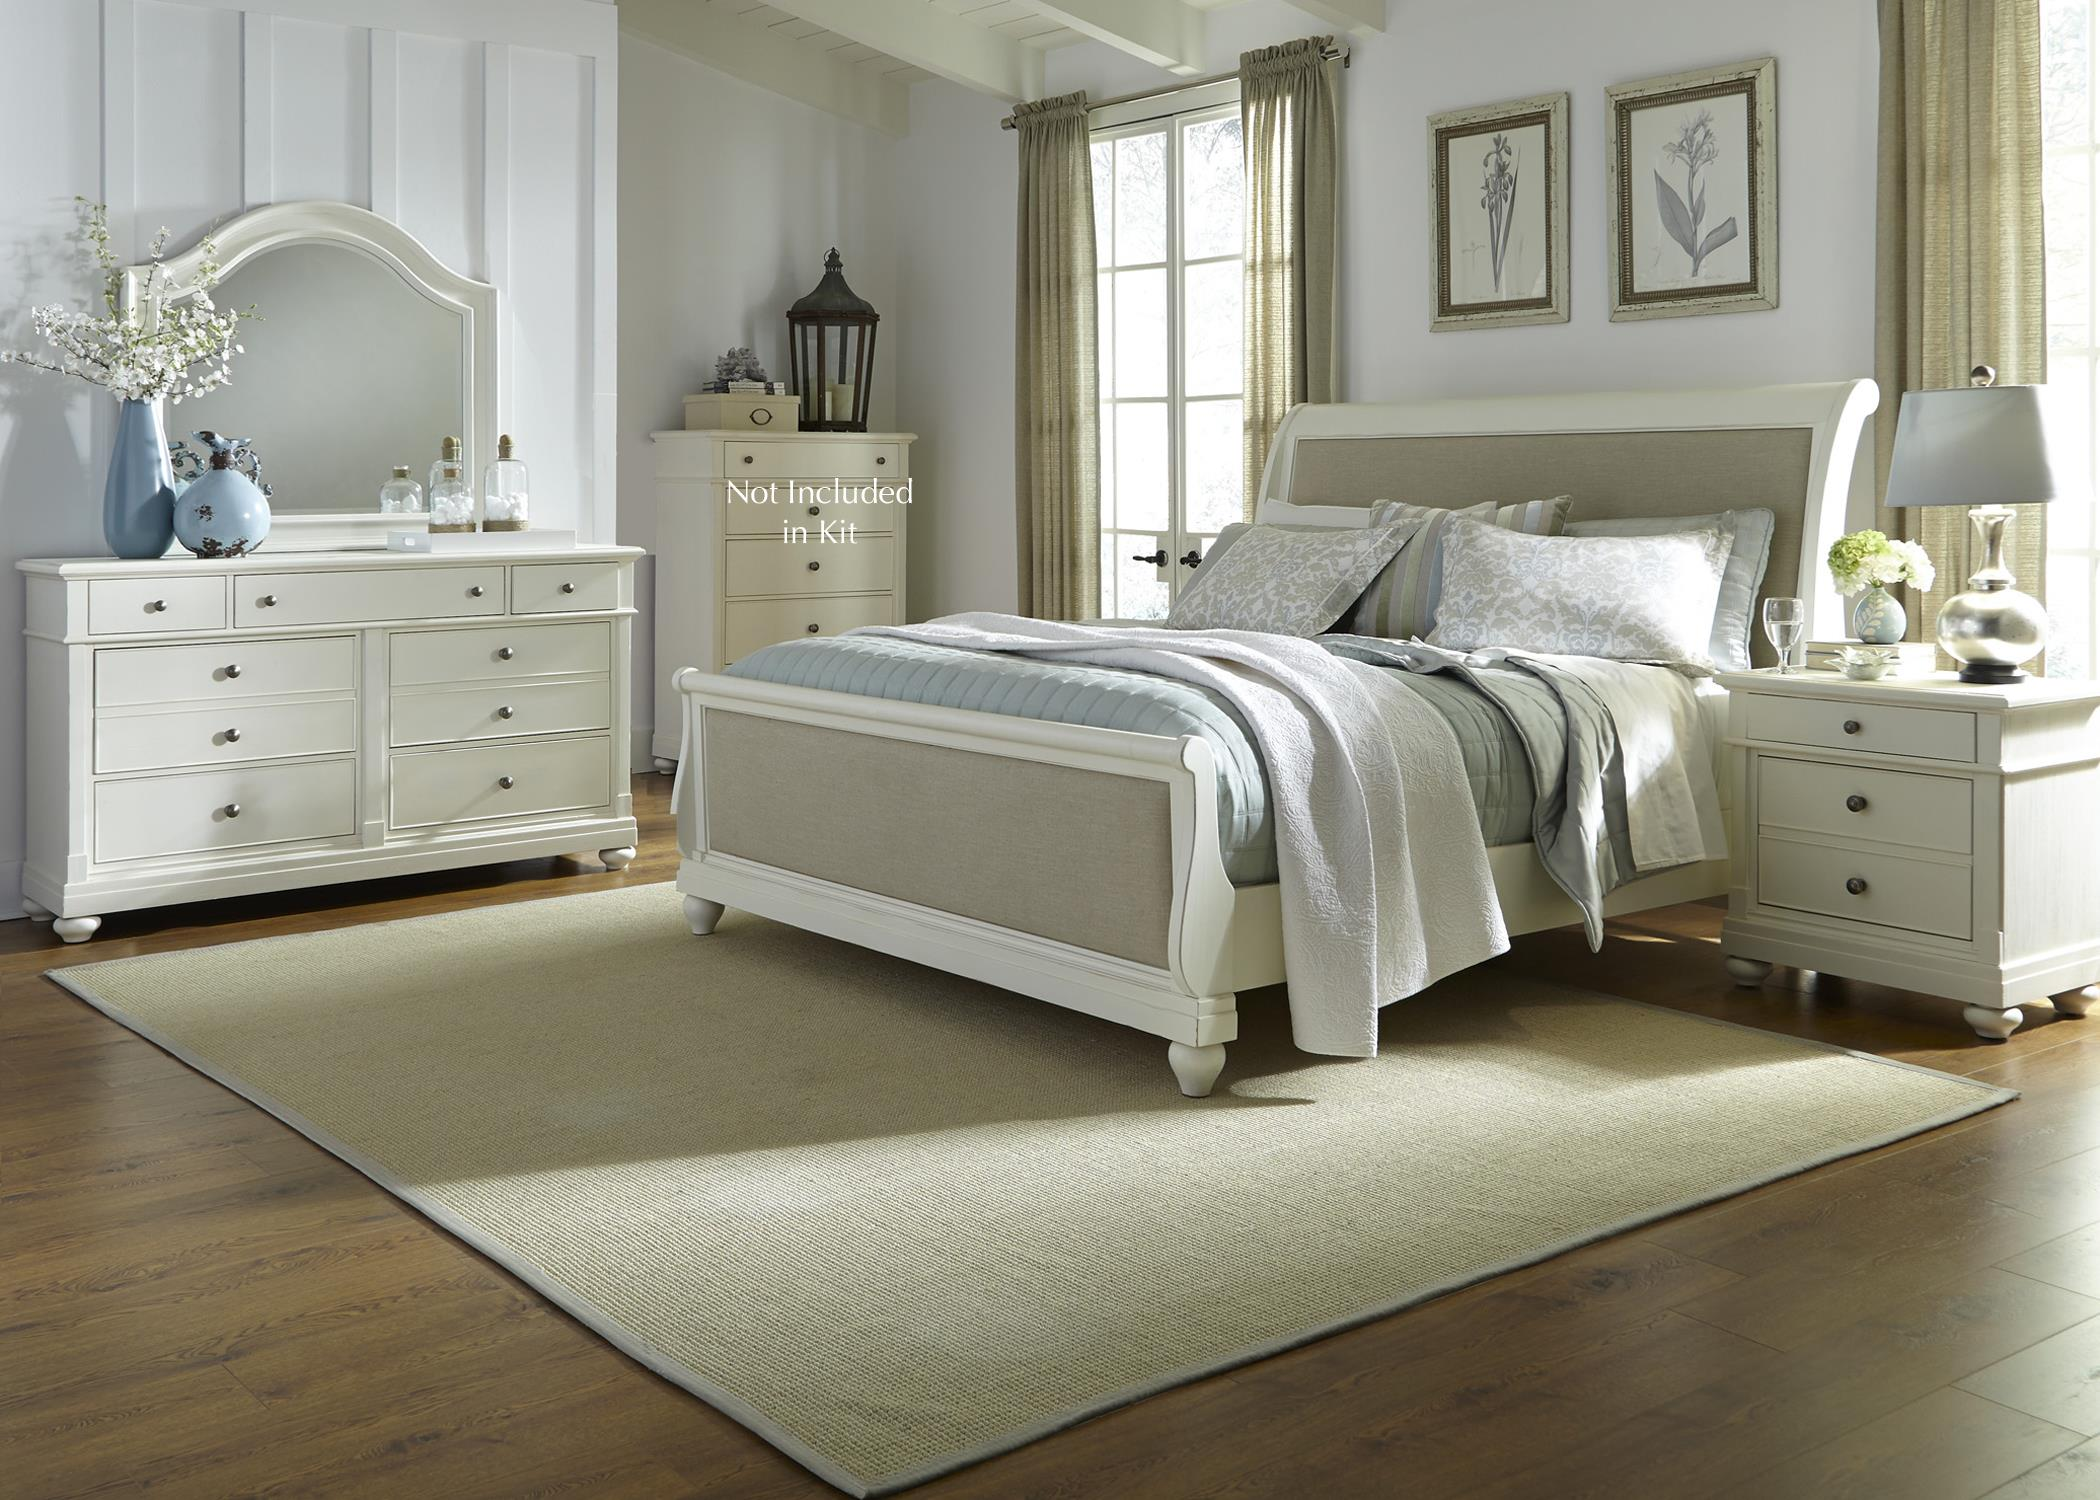 Liberty Furniture Harbor View King Bedroom Group - Item Number: 631-BR-KSLDMN